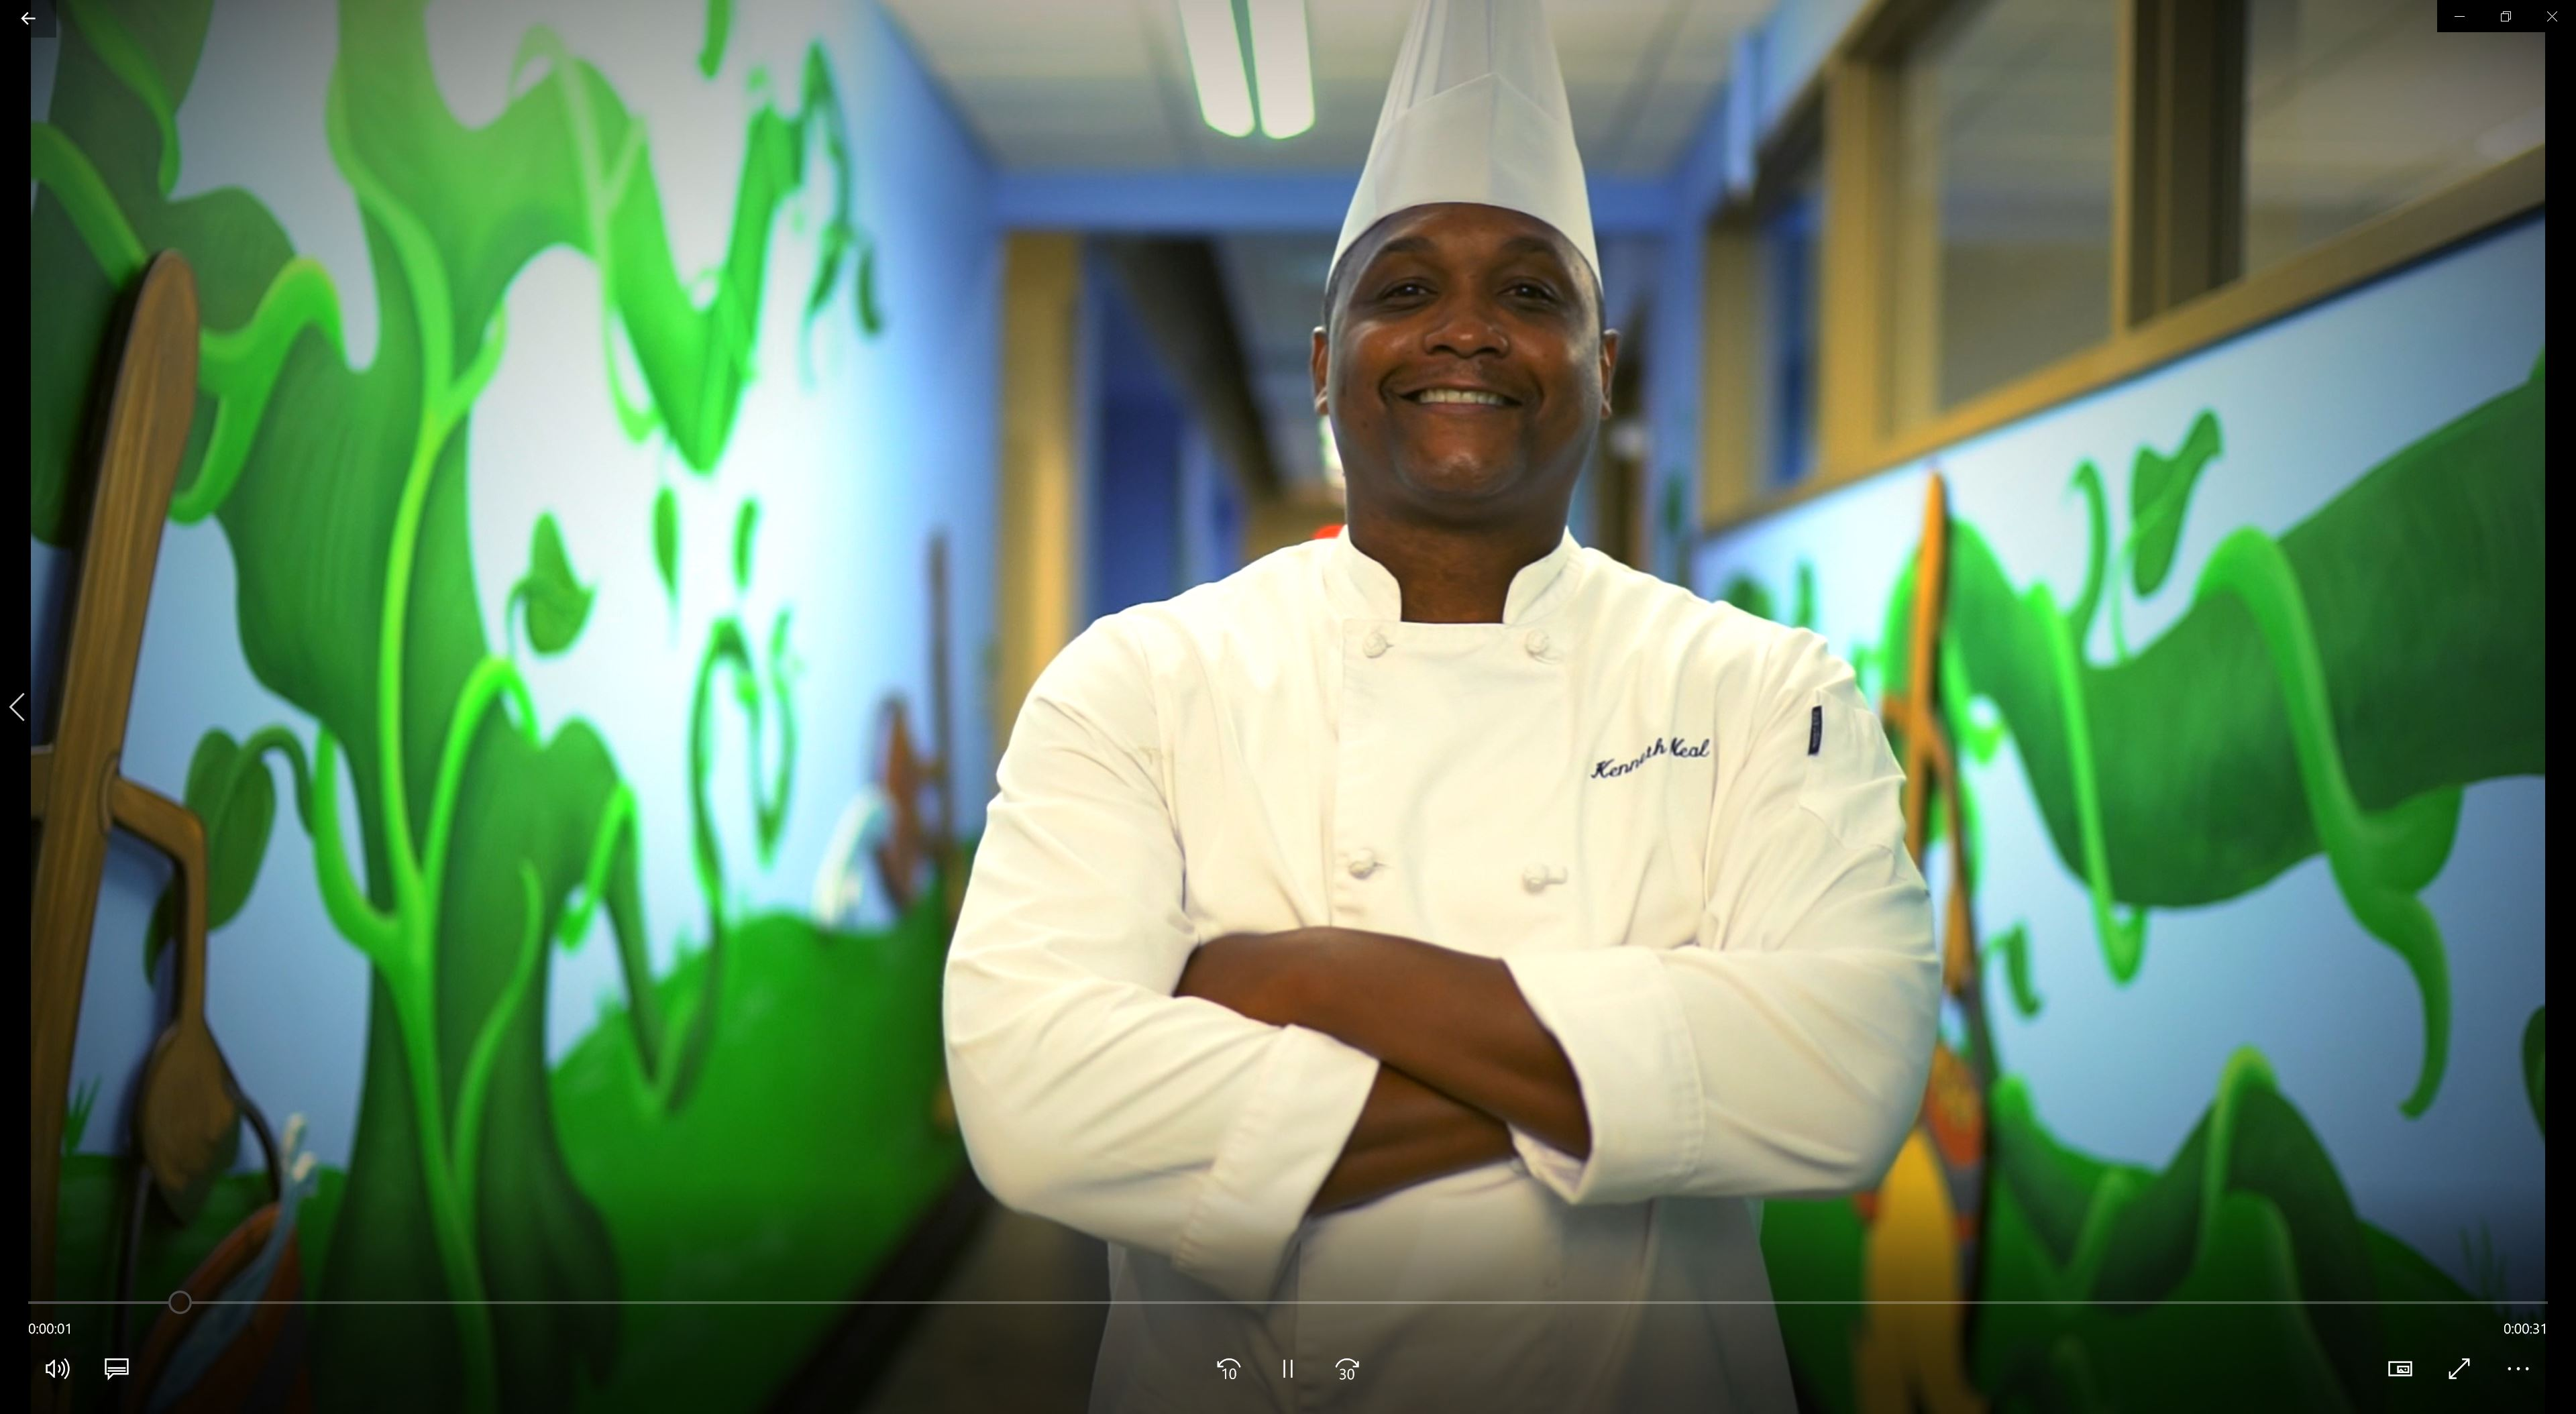 chef kenneth second harvest food bank of central florida culinary program